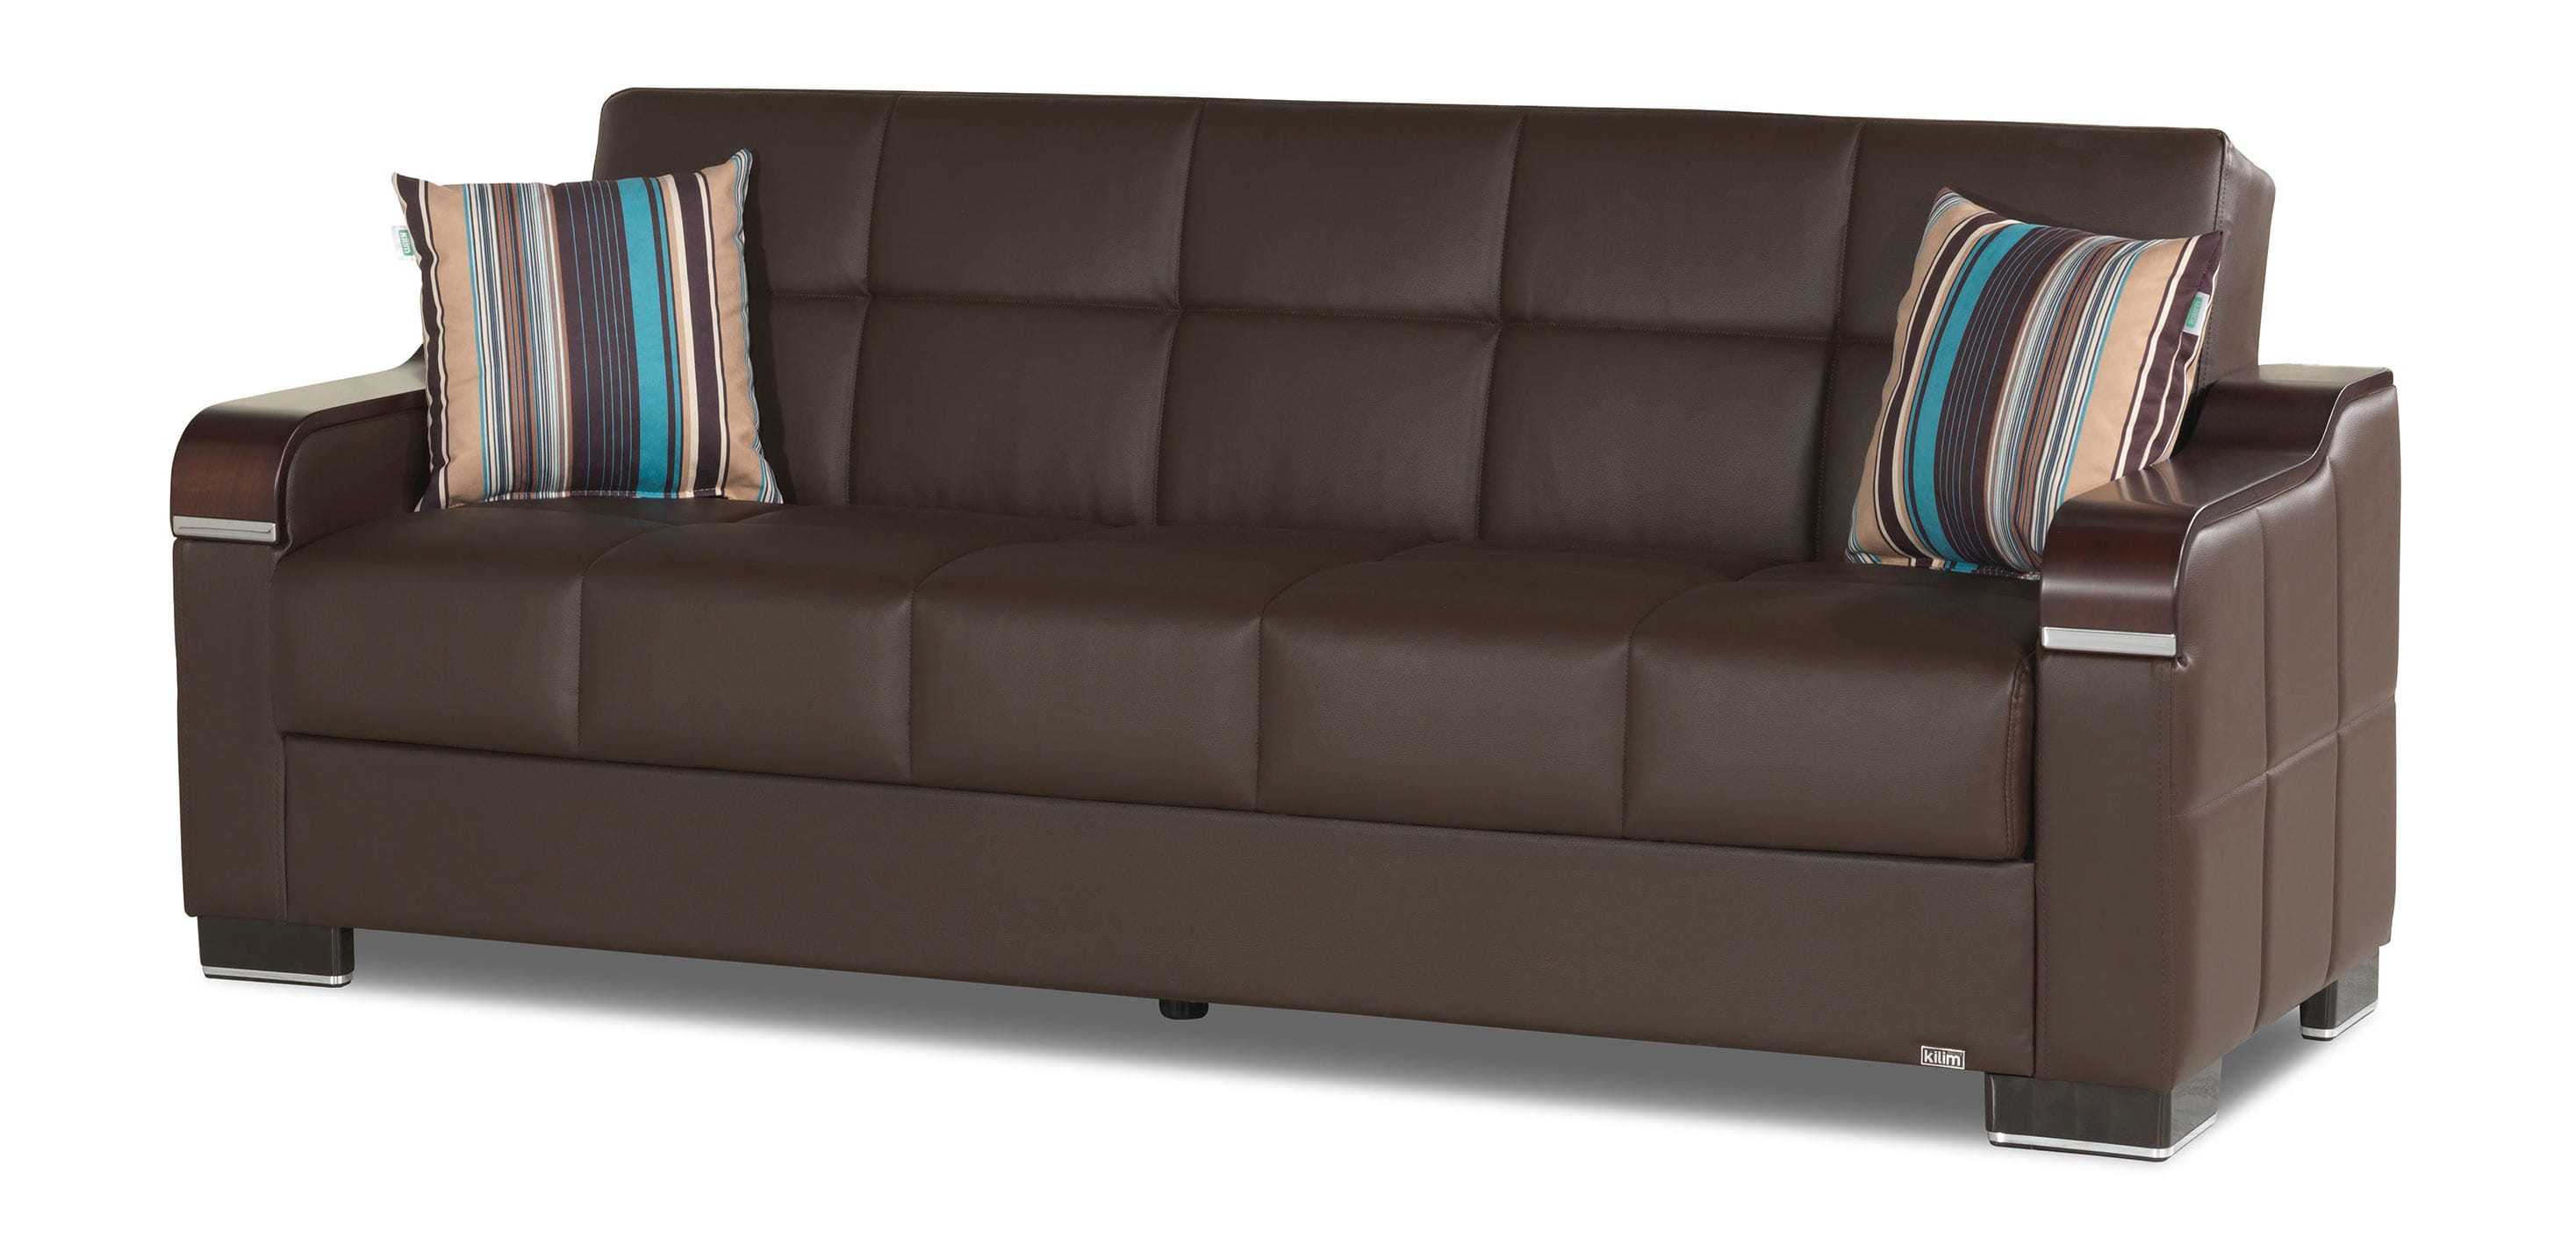 Uptown Brown Leatherette Convertible Sofa by Casamode